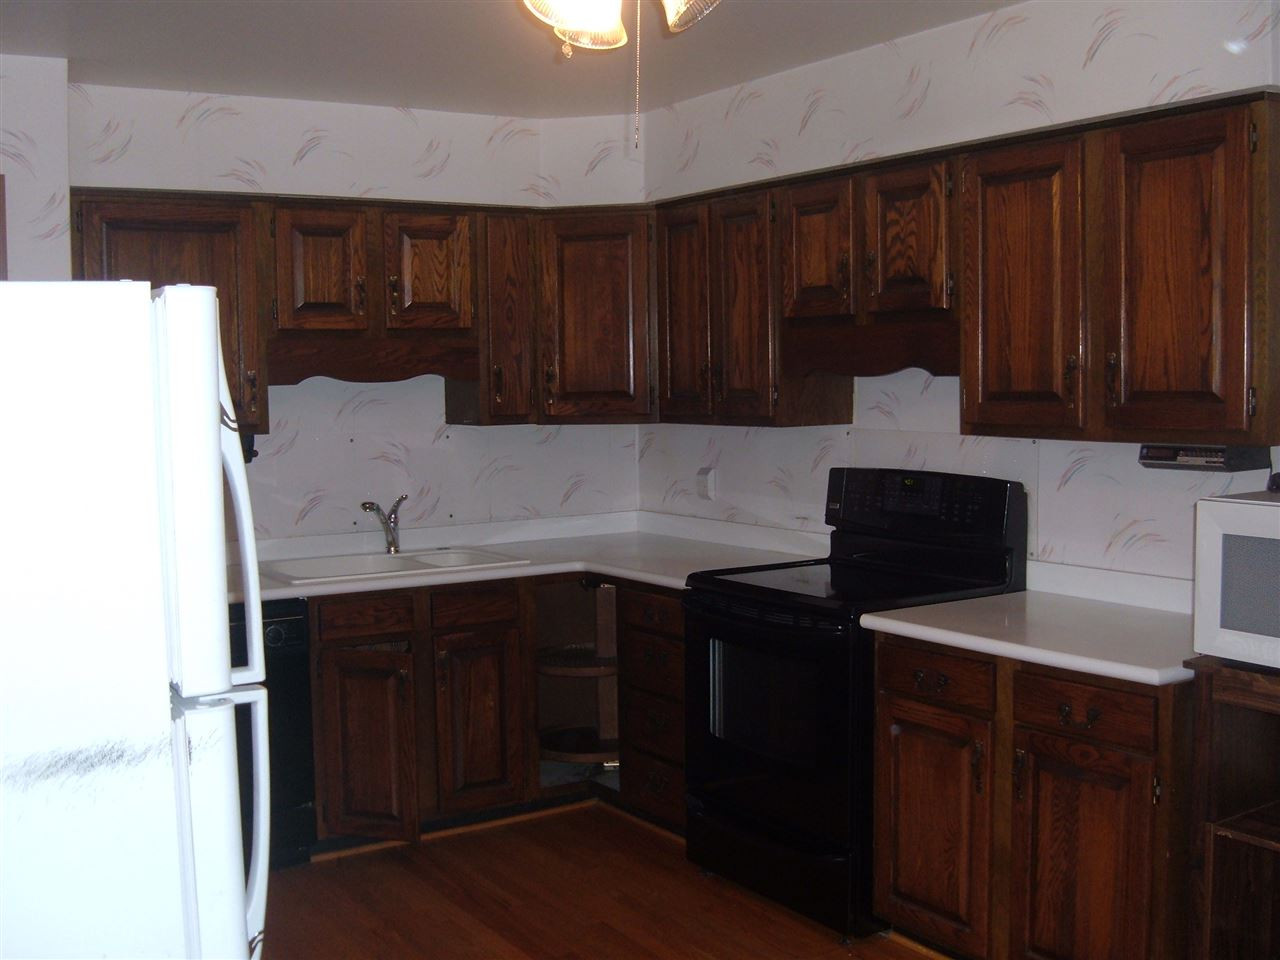 Photo 3 for 206 Caldwell Dr Elsmere, KY 41018